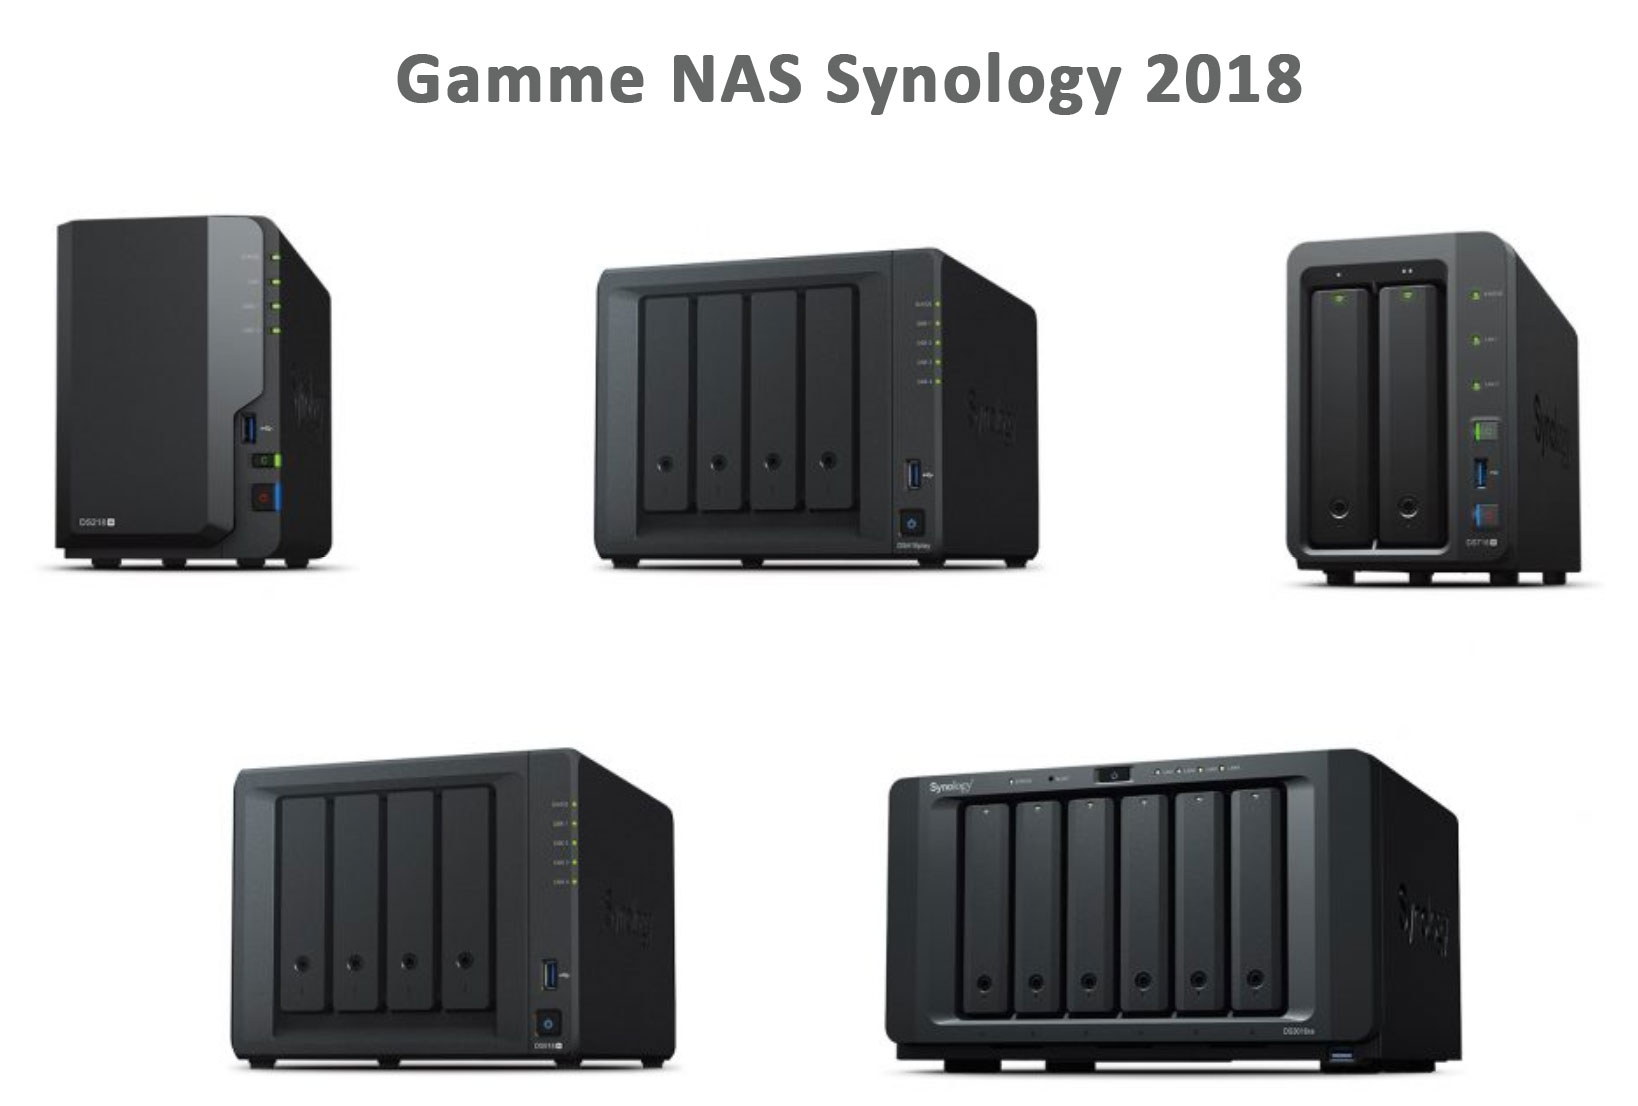 Gamme-NAS-Synology-2018